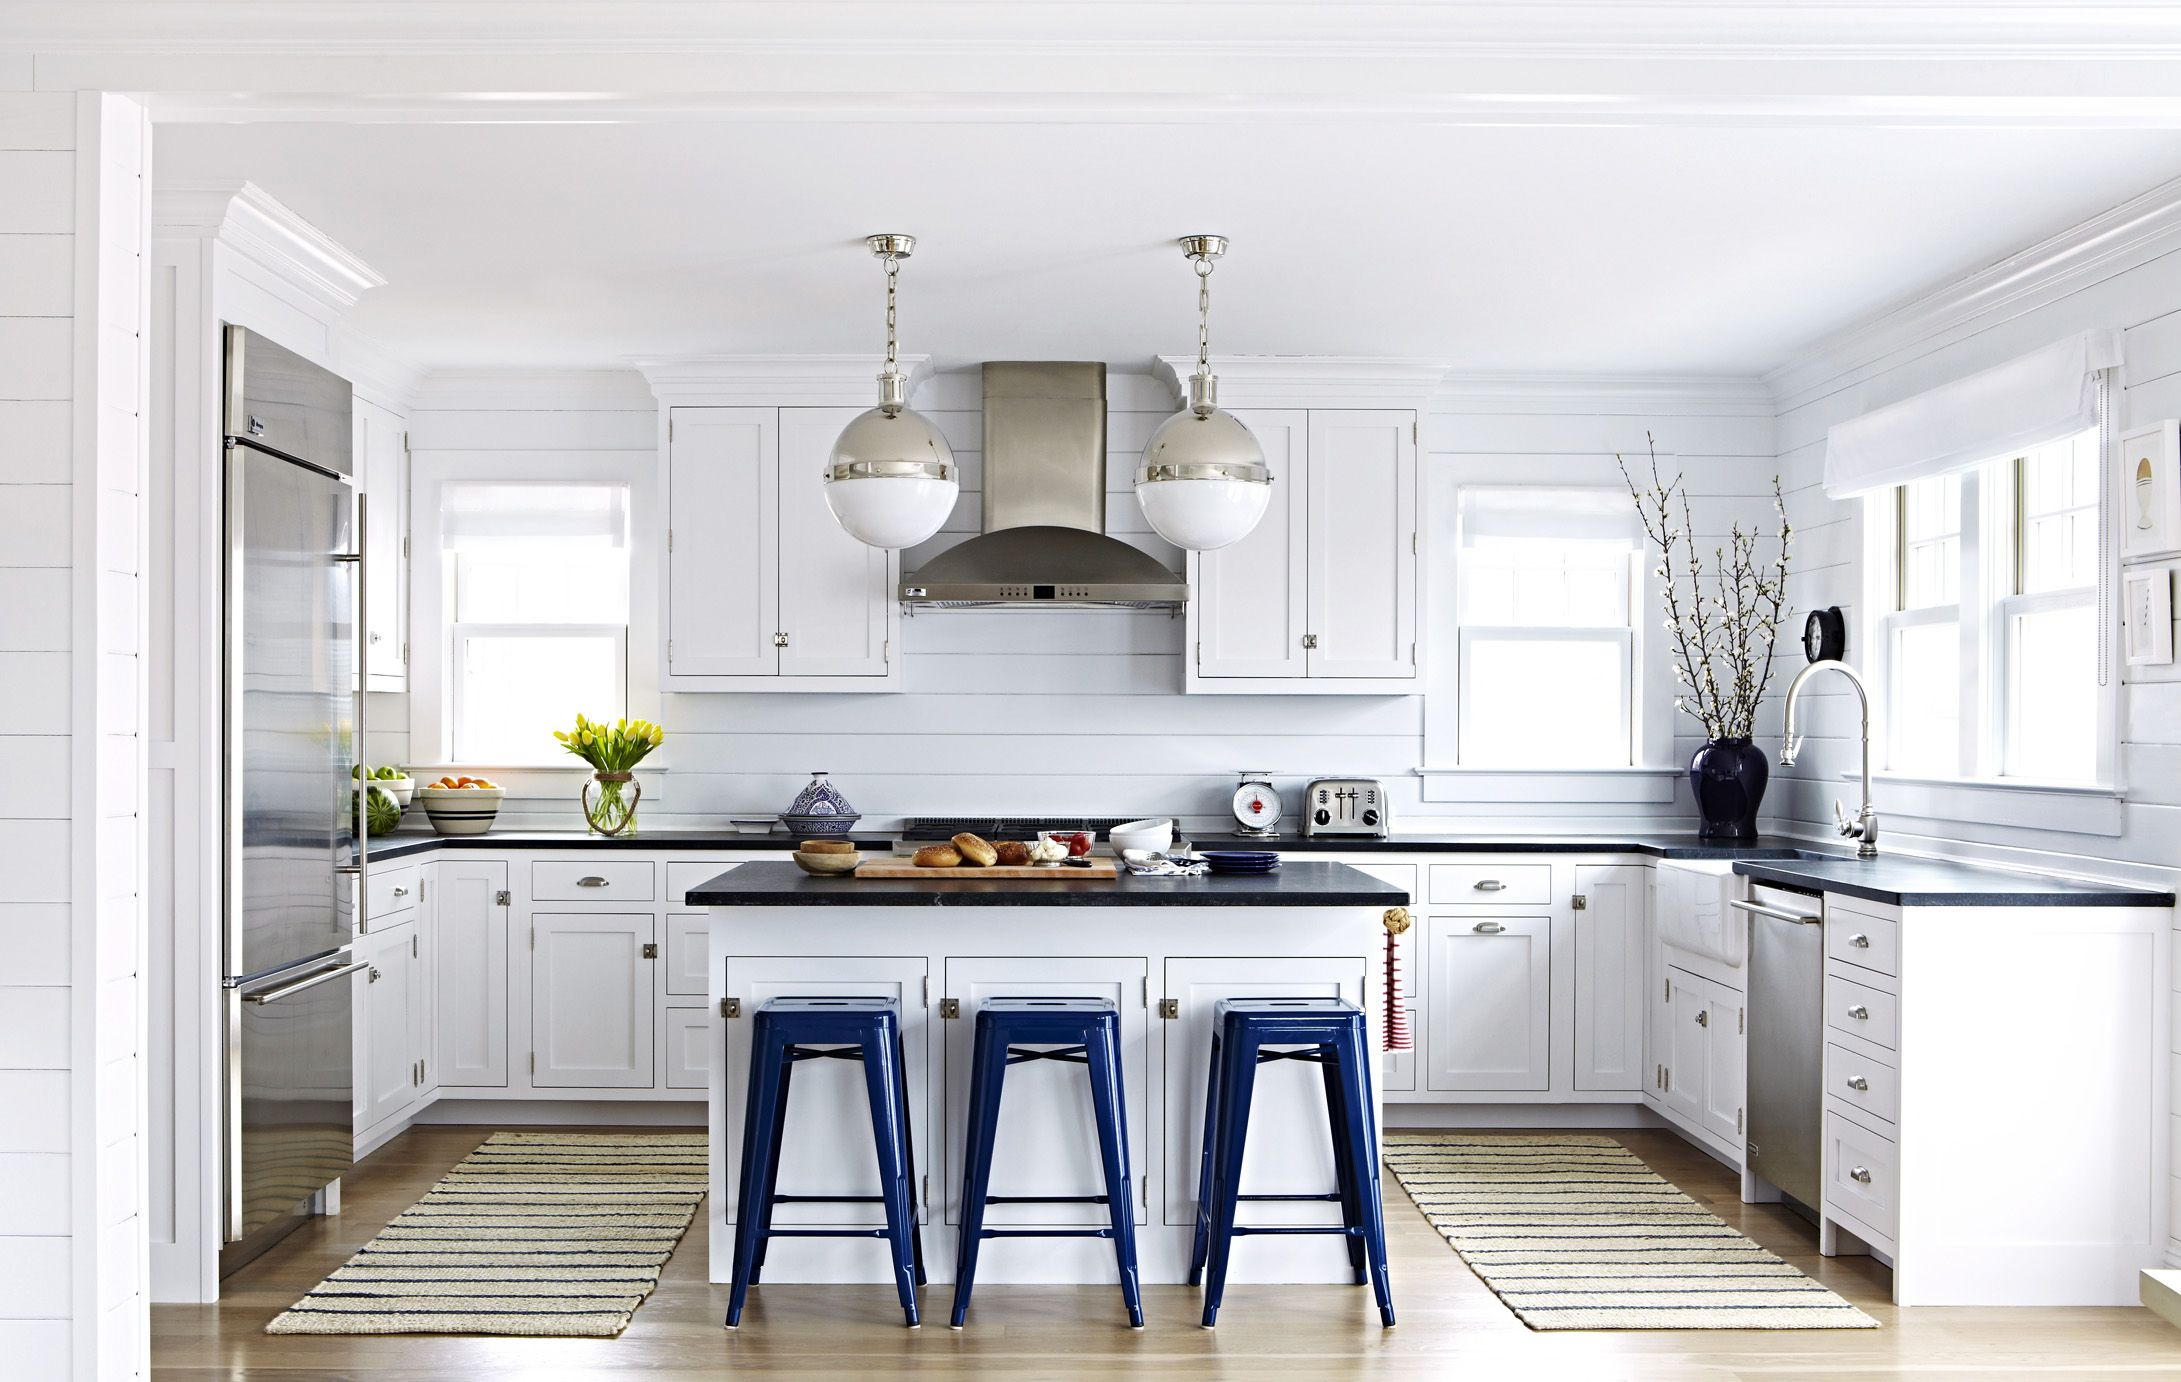 How Can I Decorate My Kitchen?